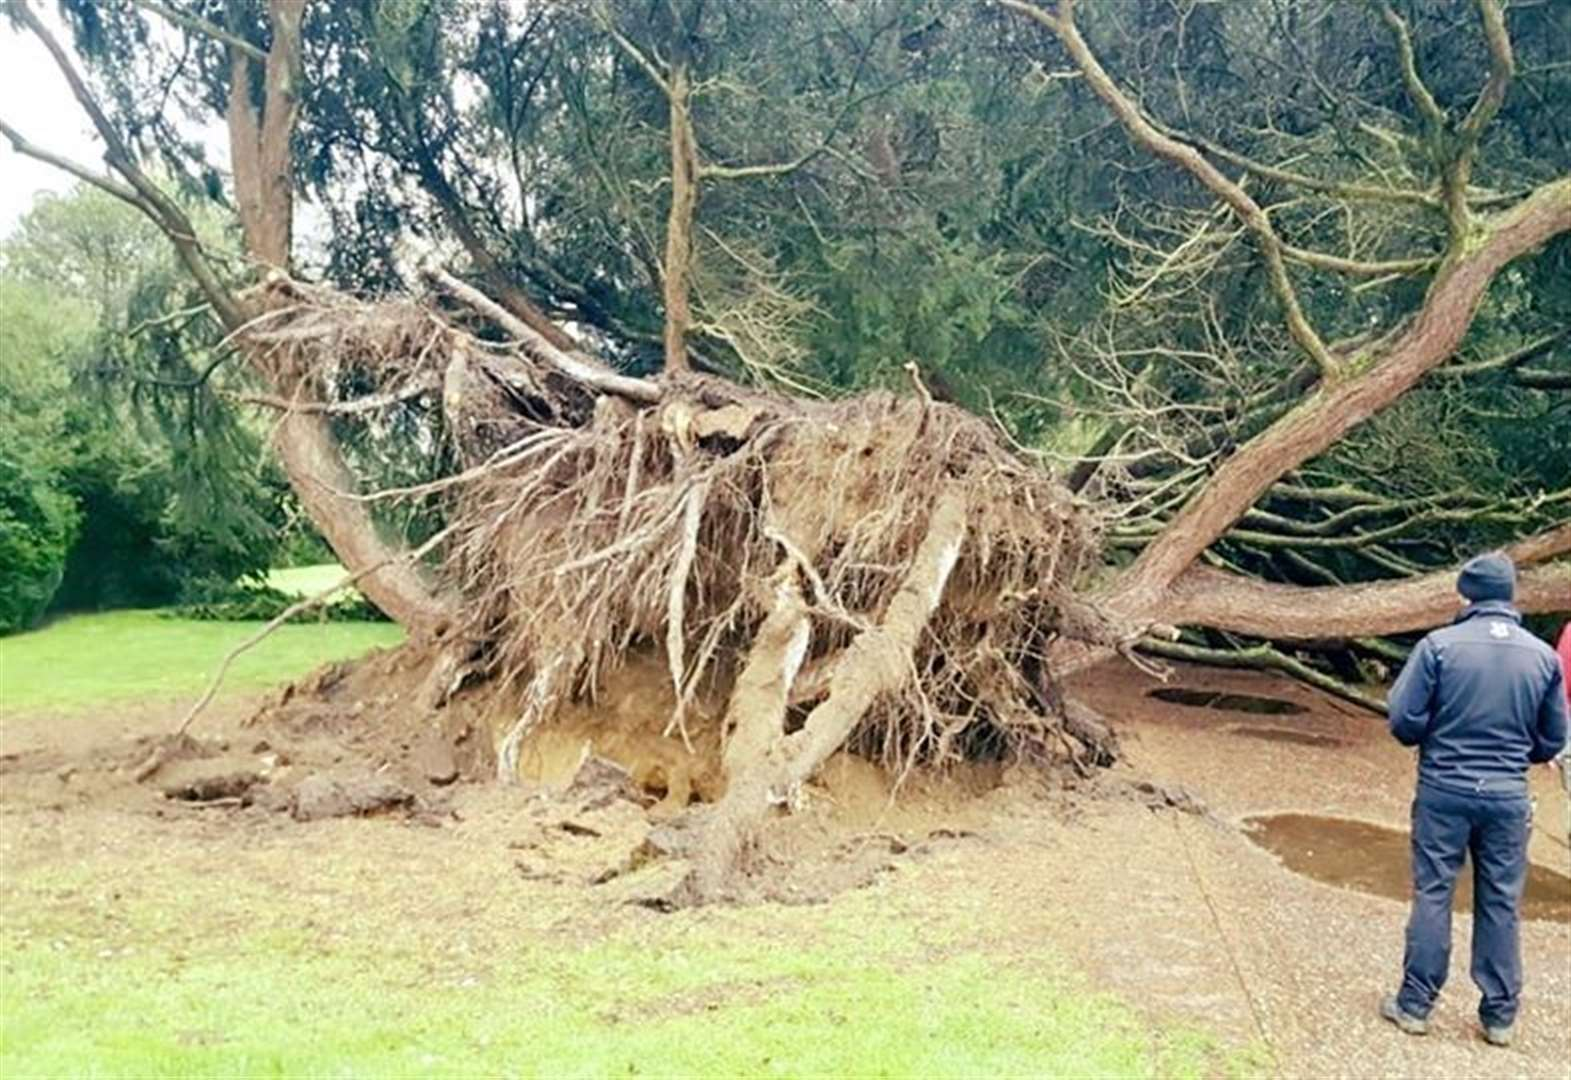 Visitors 'devastated' after 200-year-old tree is uprooted at Belton House in Grantham